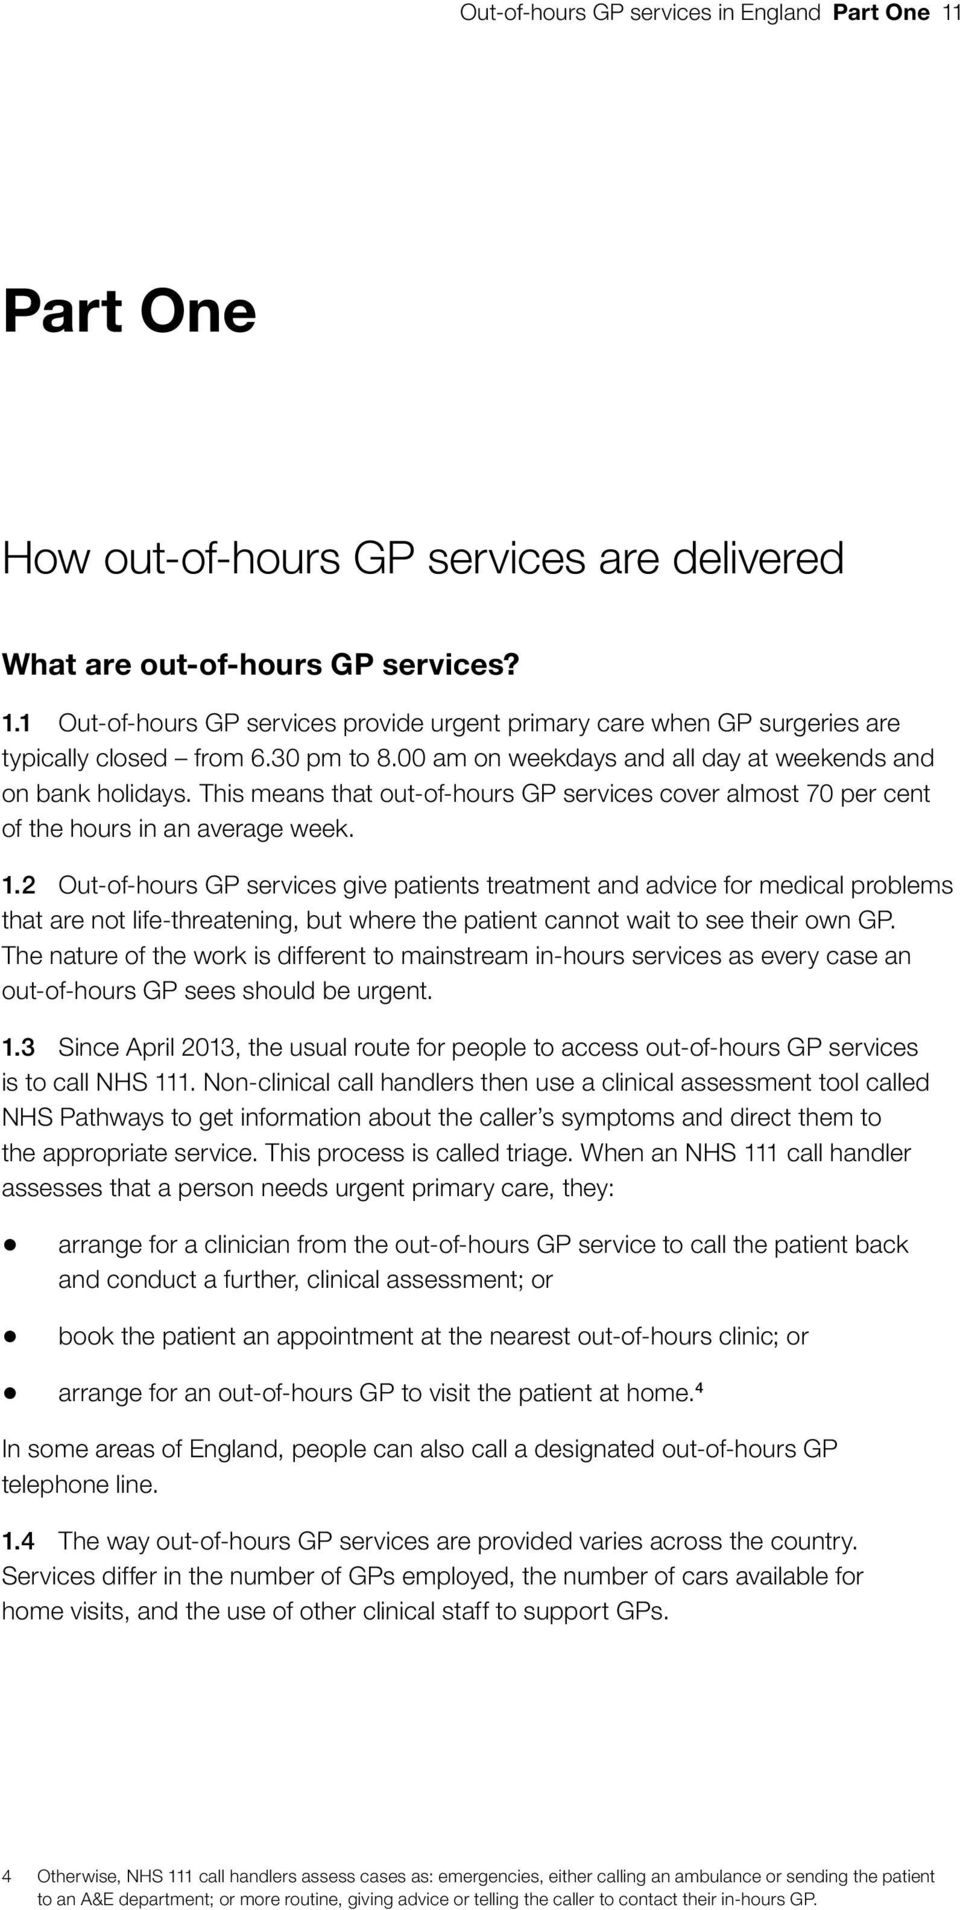 2 Out-of-hours GP services give patients treatment and advice for medical problems that are not life-threatening, but where the patient cannot wait to see their own GP.